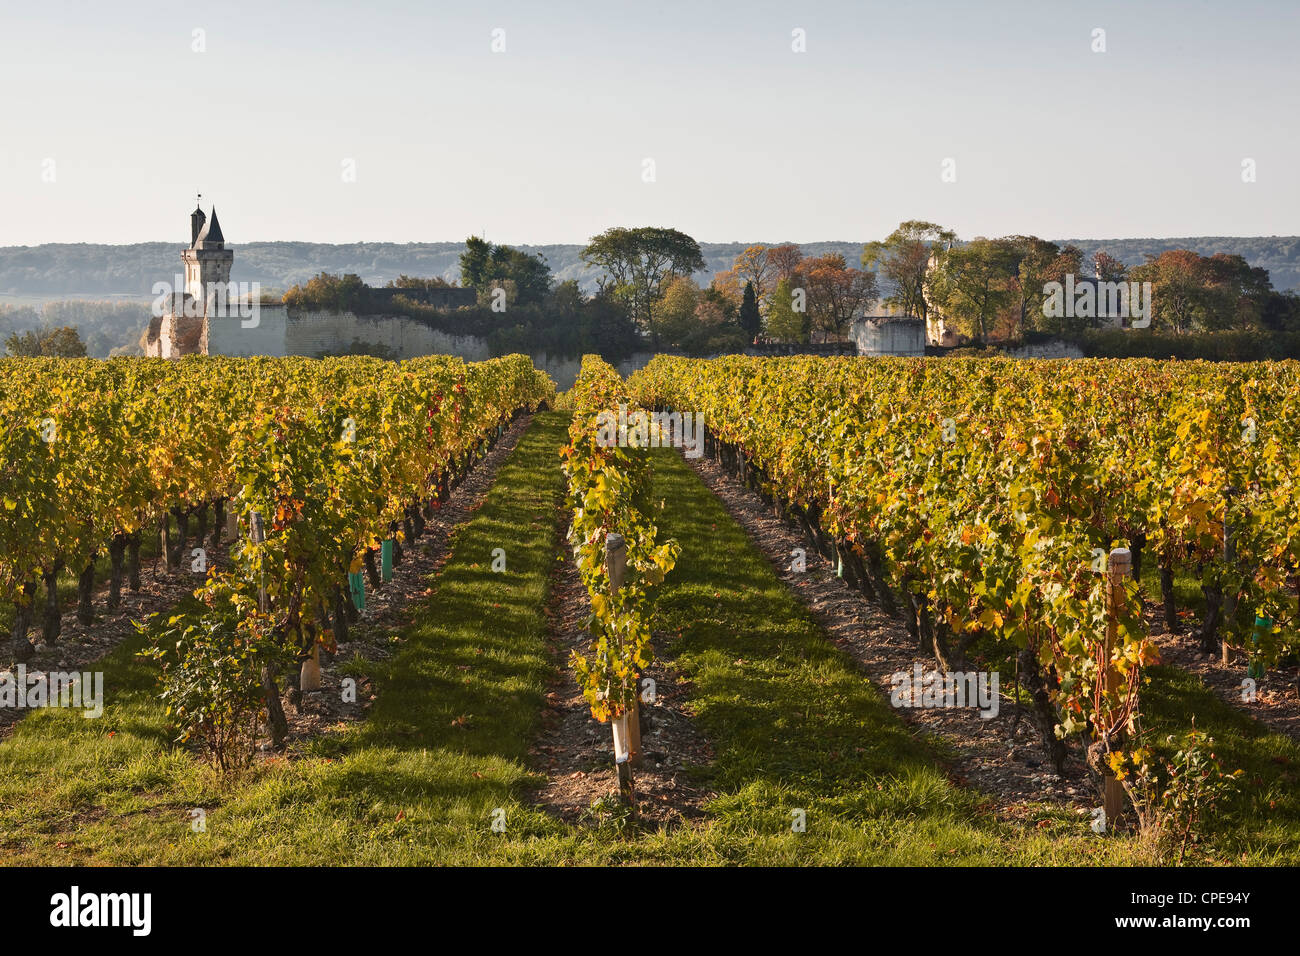 Vineyards near to the chateau of Chinon, Indre-et-Loire, Loire Valley, France, Europe - Stock Image